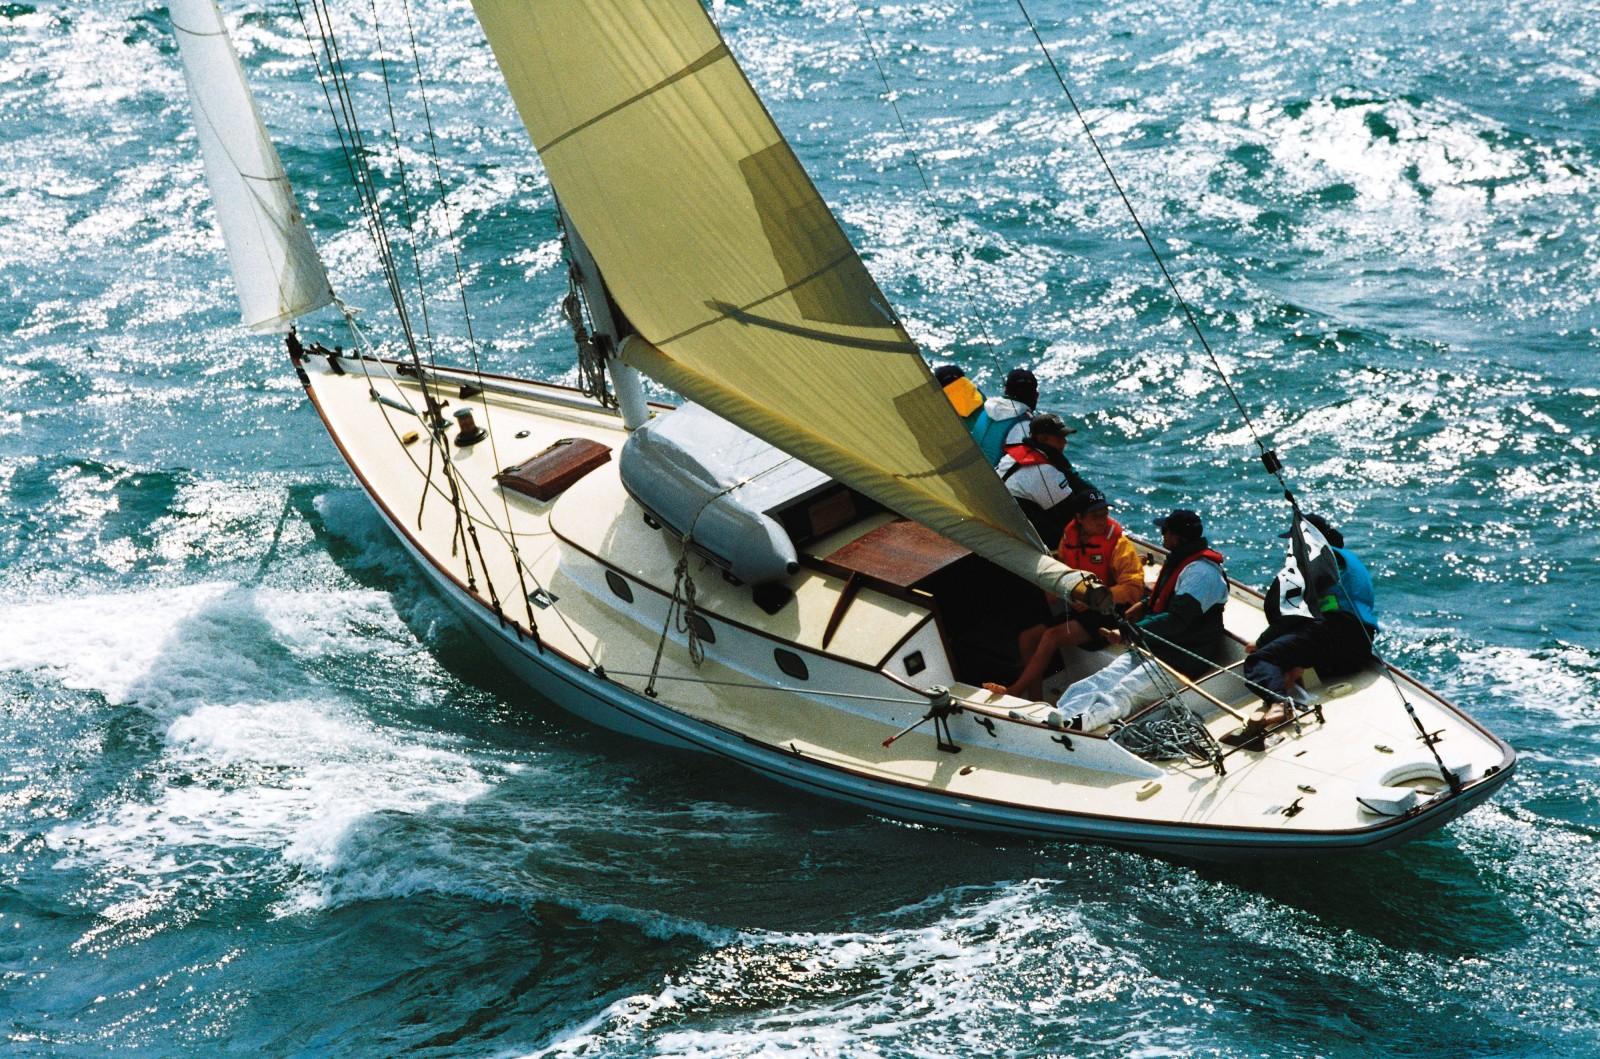 """Modern racing yachts fight the water. Little Jim and her kind work with it,"" says Hamish Ross. They may not be yachting's Formula 1, but for beauty of line and sheer durability the graceful ships of the Logan-Bailey era—Rolls-Royces of wind and wave—take undisputed line honours. Under full sail yet, they have many a league ahead."